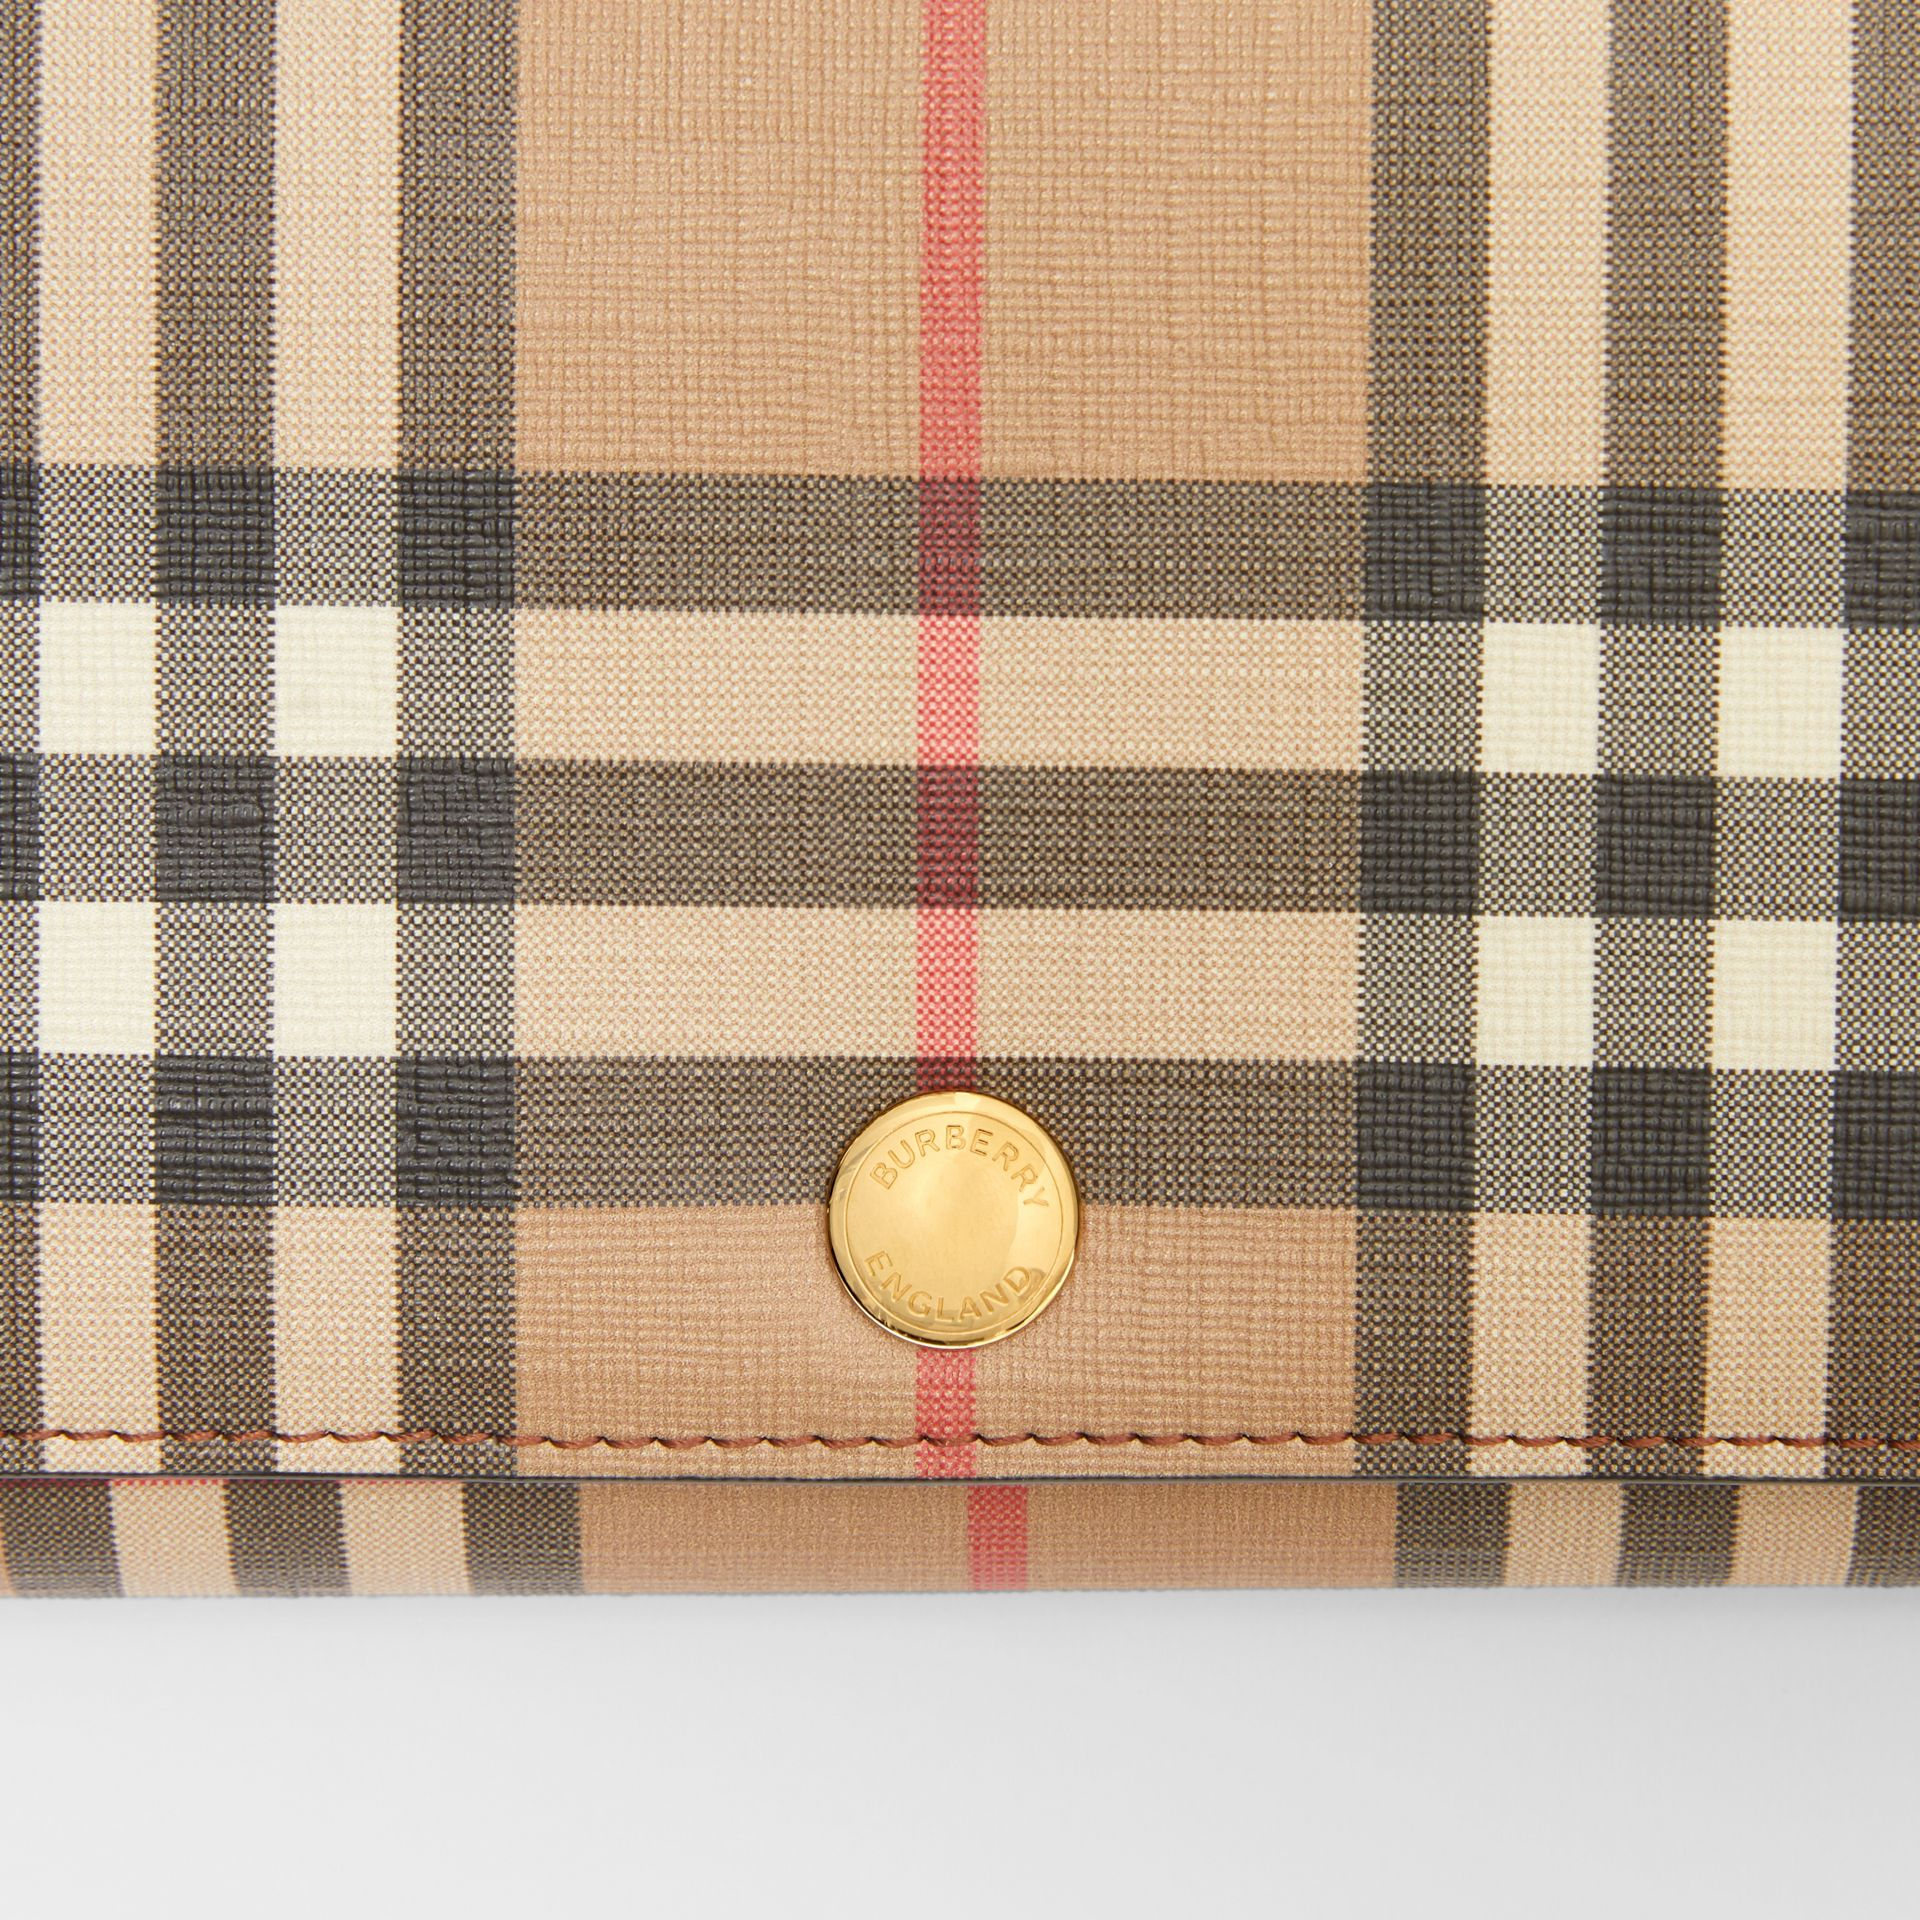 Vintage Check Wallet with Detachable Strap in Malt Brown - Women | Burberry - gallery image 1